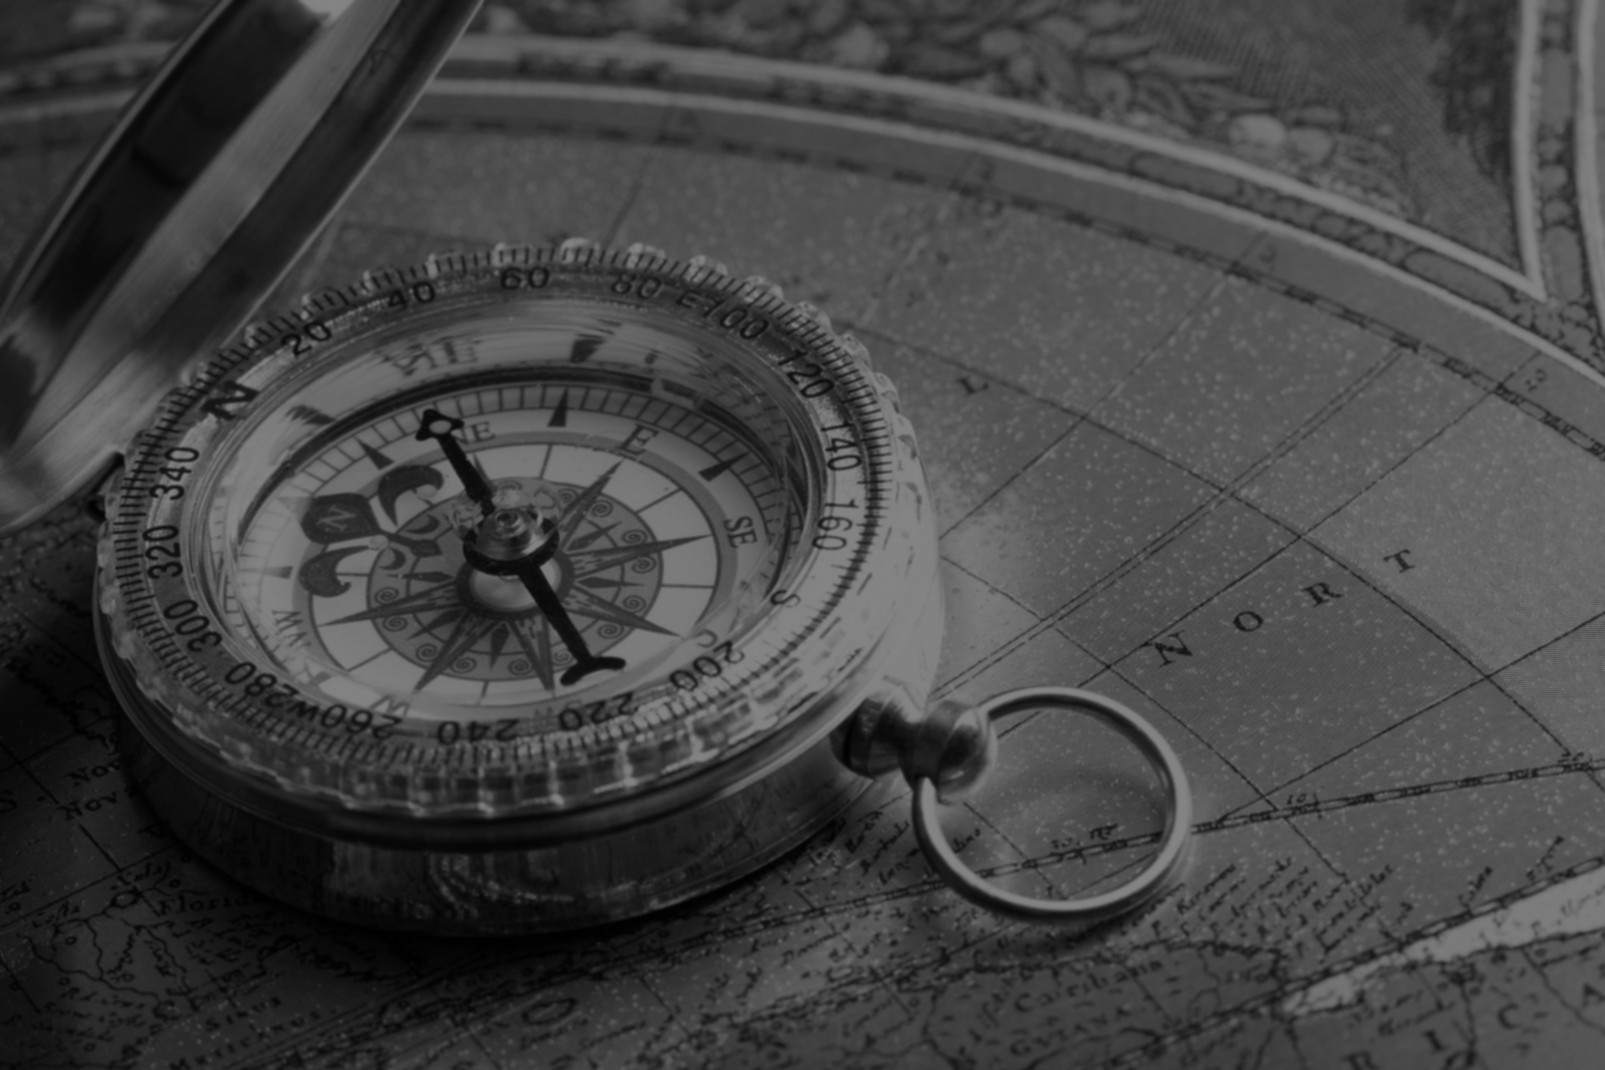 A beautiful compass sitting on an antique map